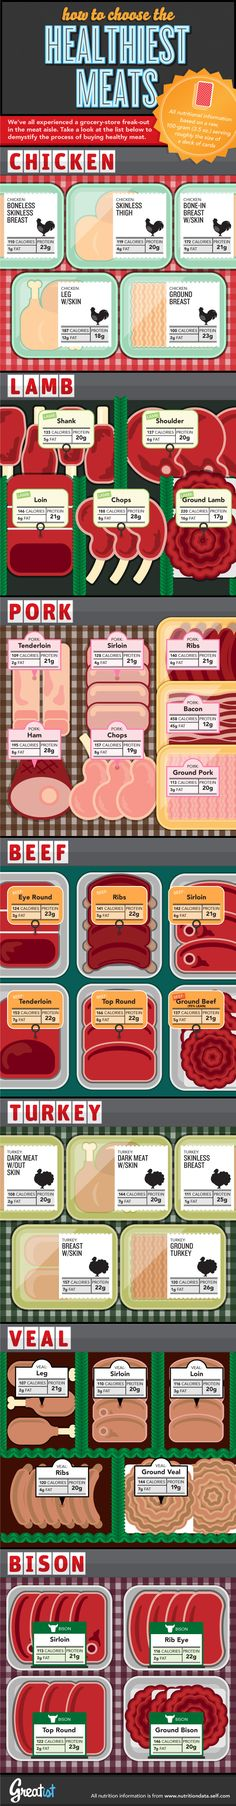 Picking the best cuts of meat.